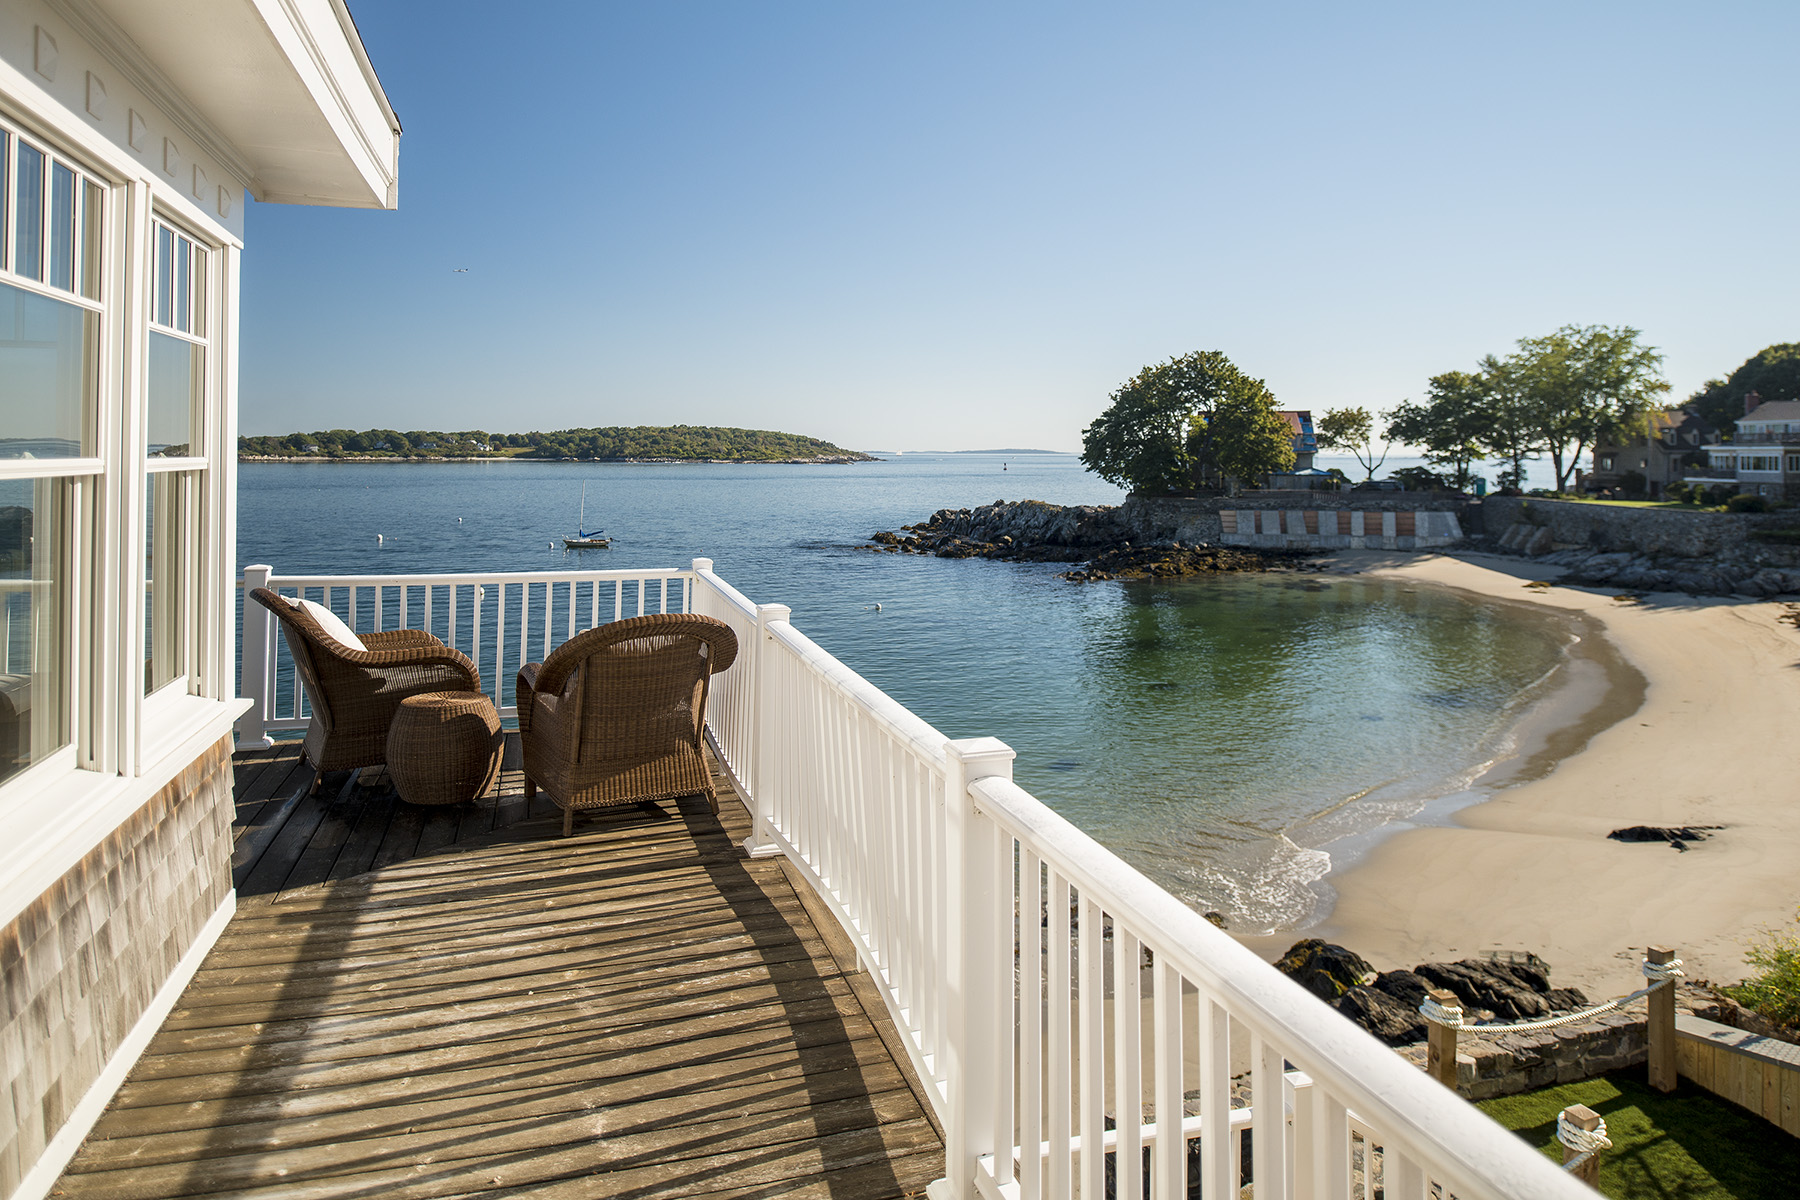 Single Family Home for Sale at 11 Birch Knolls Cape Elizabeth, Maine 04107 United States